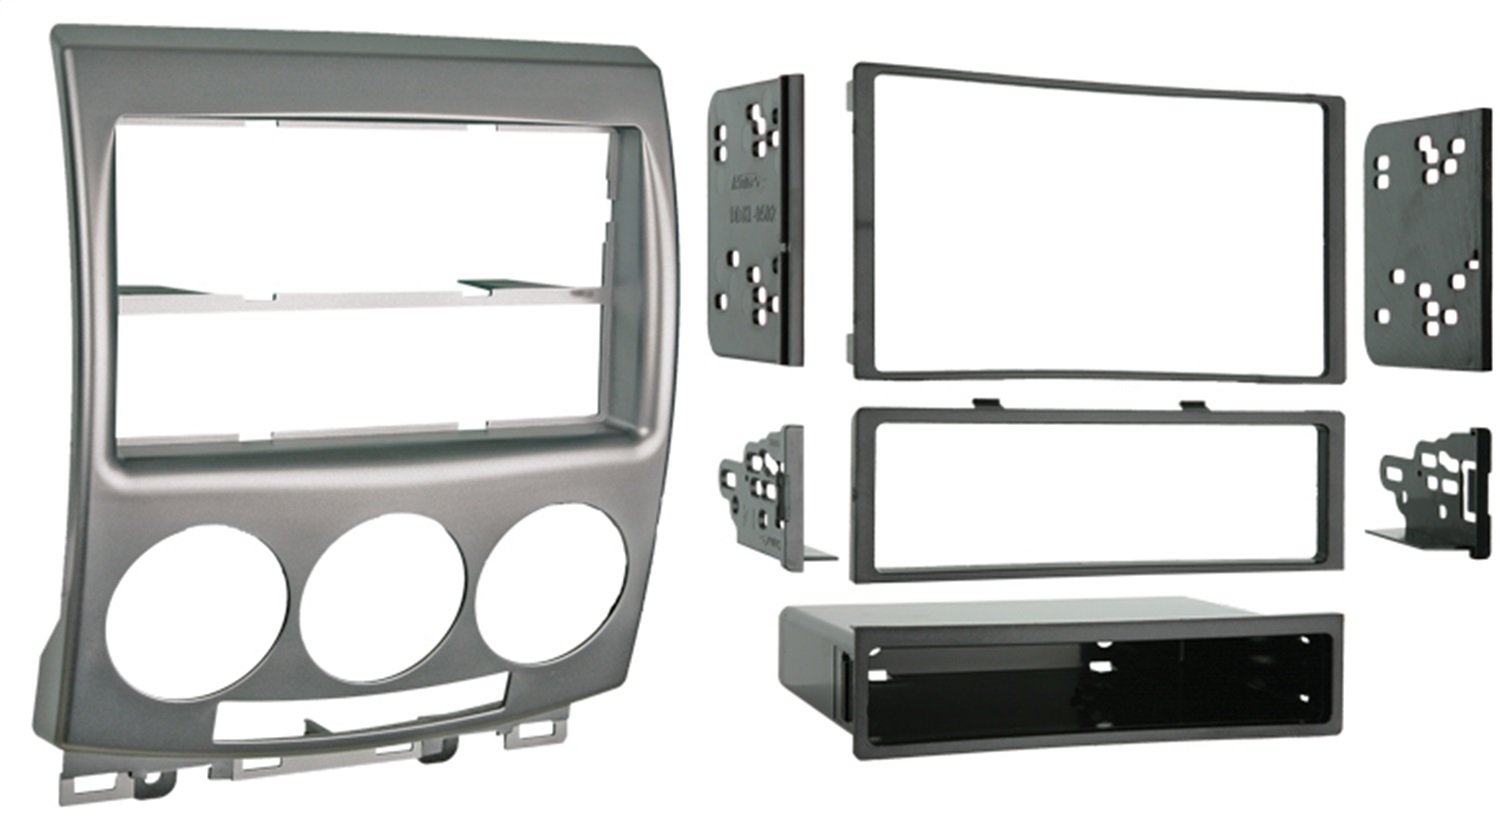 Metra 99-7509 Single DIN/Double DIN Installation Kit for 2006-2007 Mazda 5 Vehicles (Silver) Metra Electronics Corp